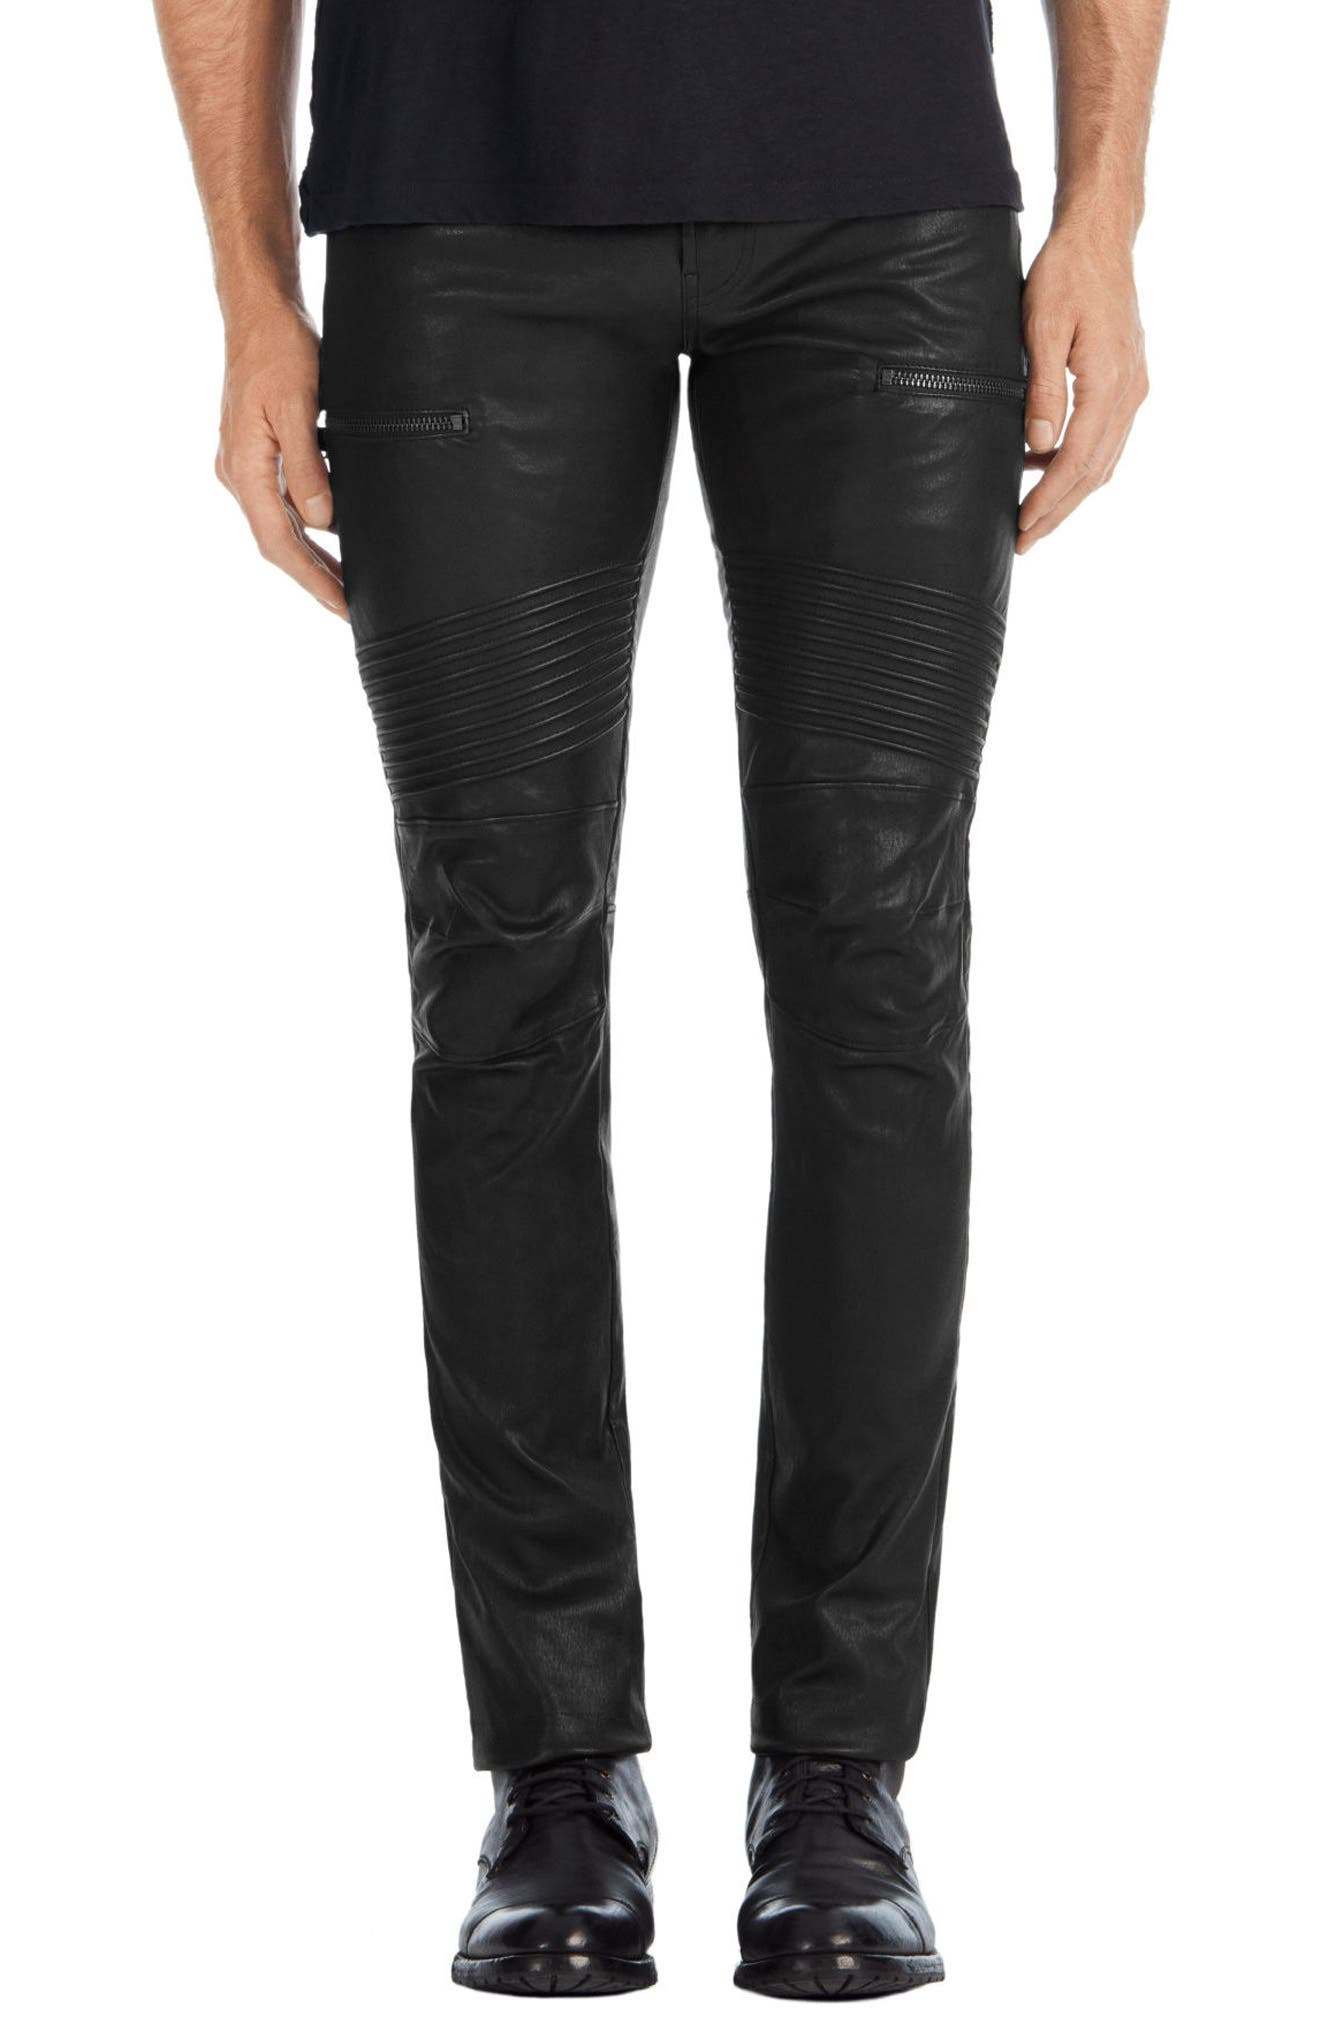 Acrux Skinny Fit Moto Leather Pants,                             Main thumbnail 1, color,                             001